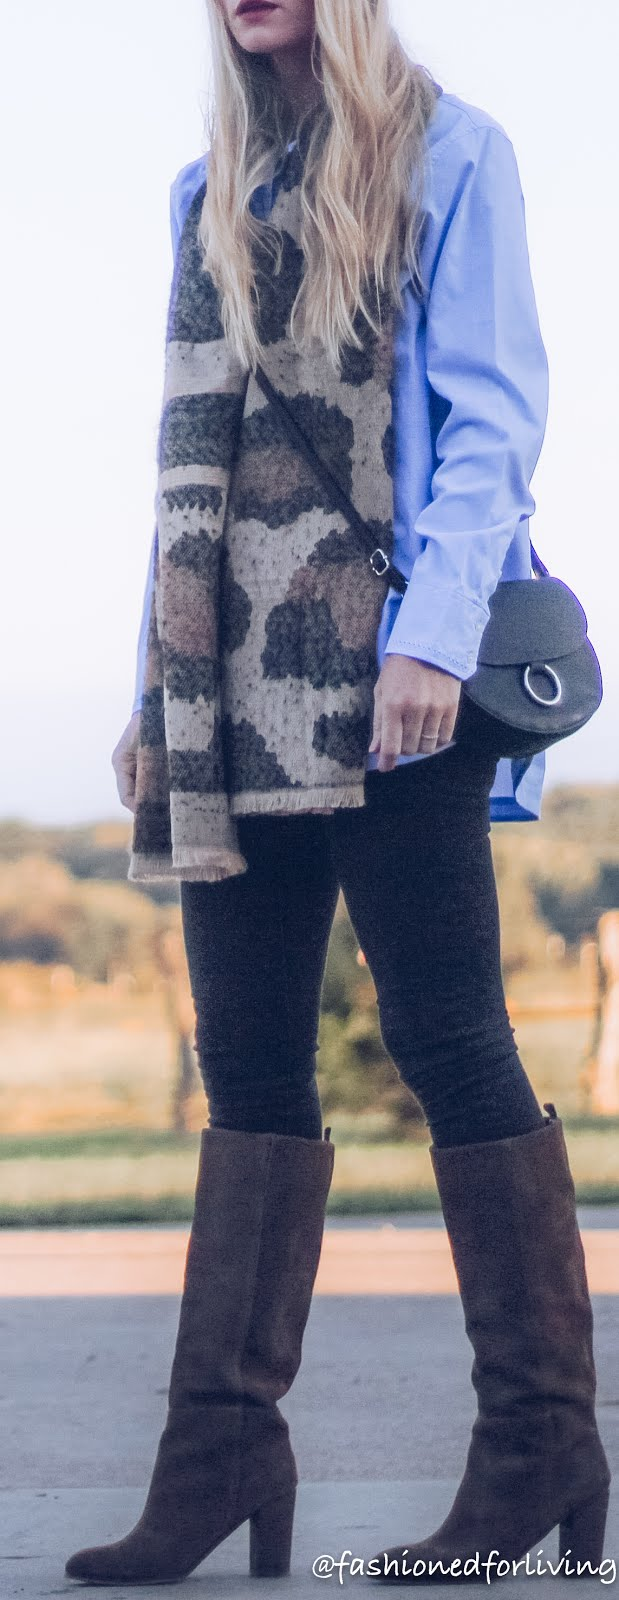 easy fall outfit with black skinny jeans, tunic shirt, suede boots and leopard scarf